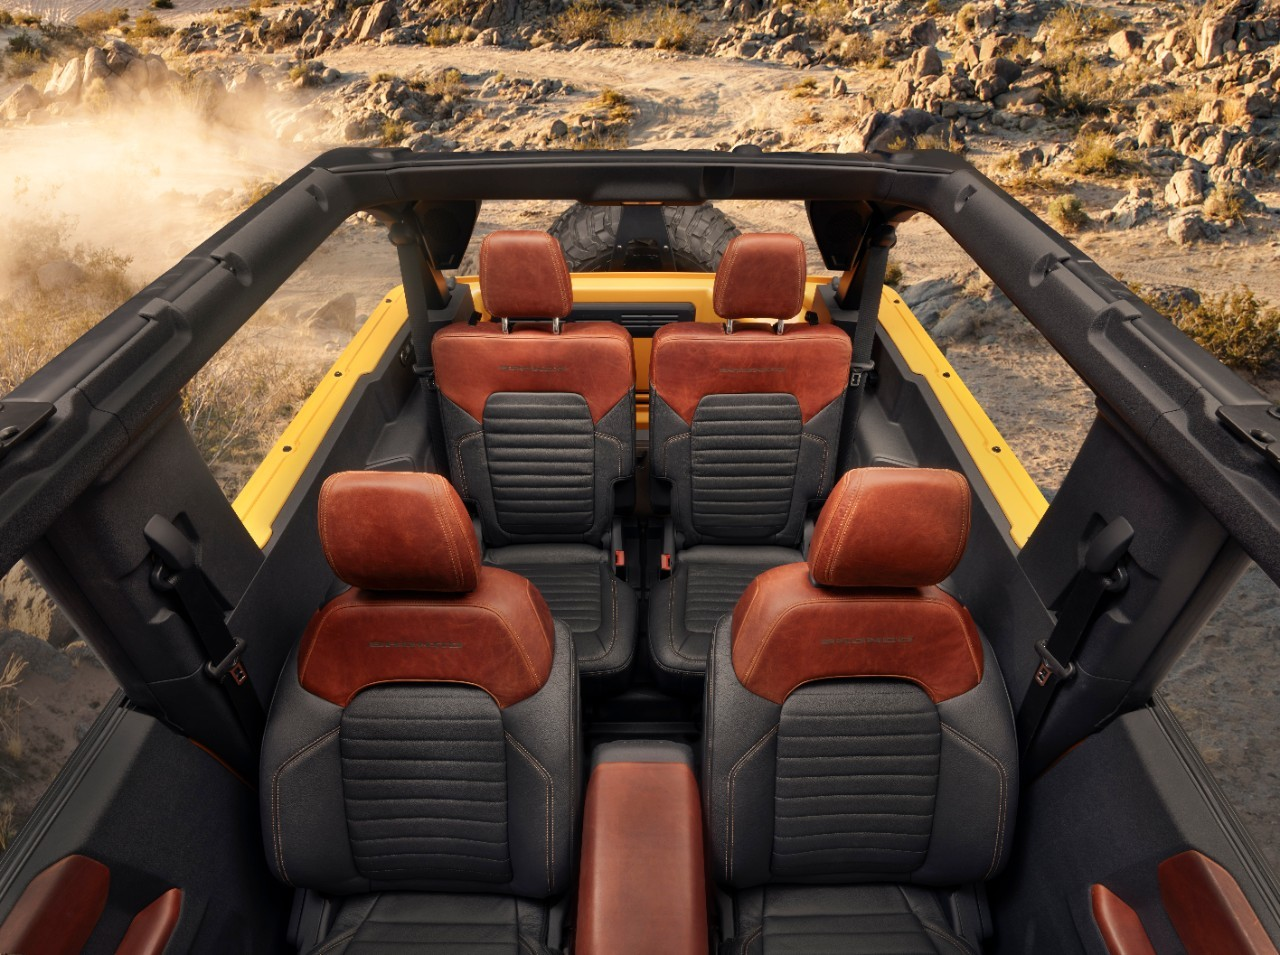 2021 Ford Bronco First Edition Reservations Full for Both ...